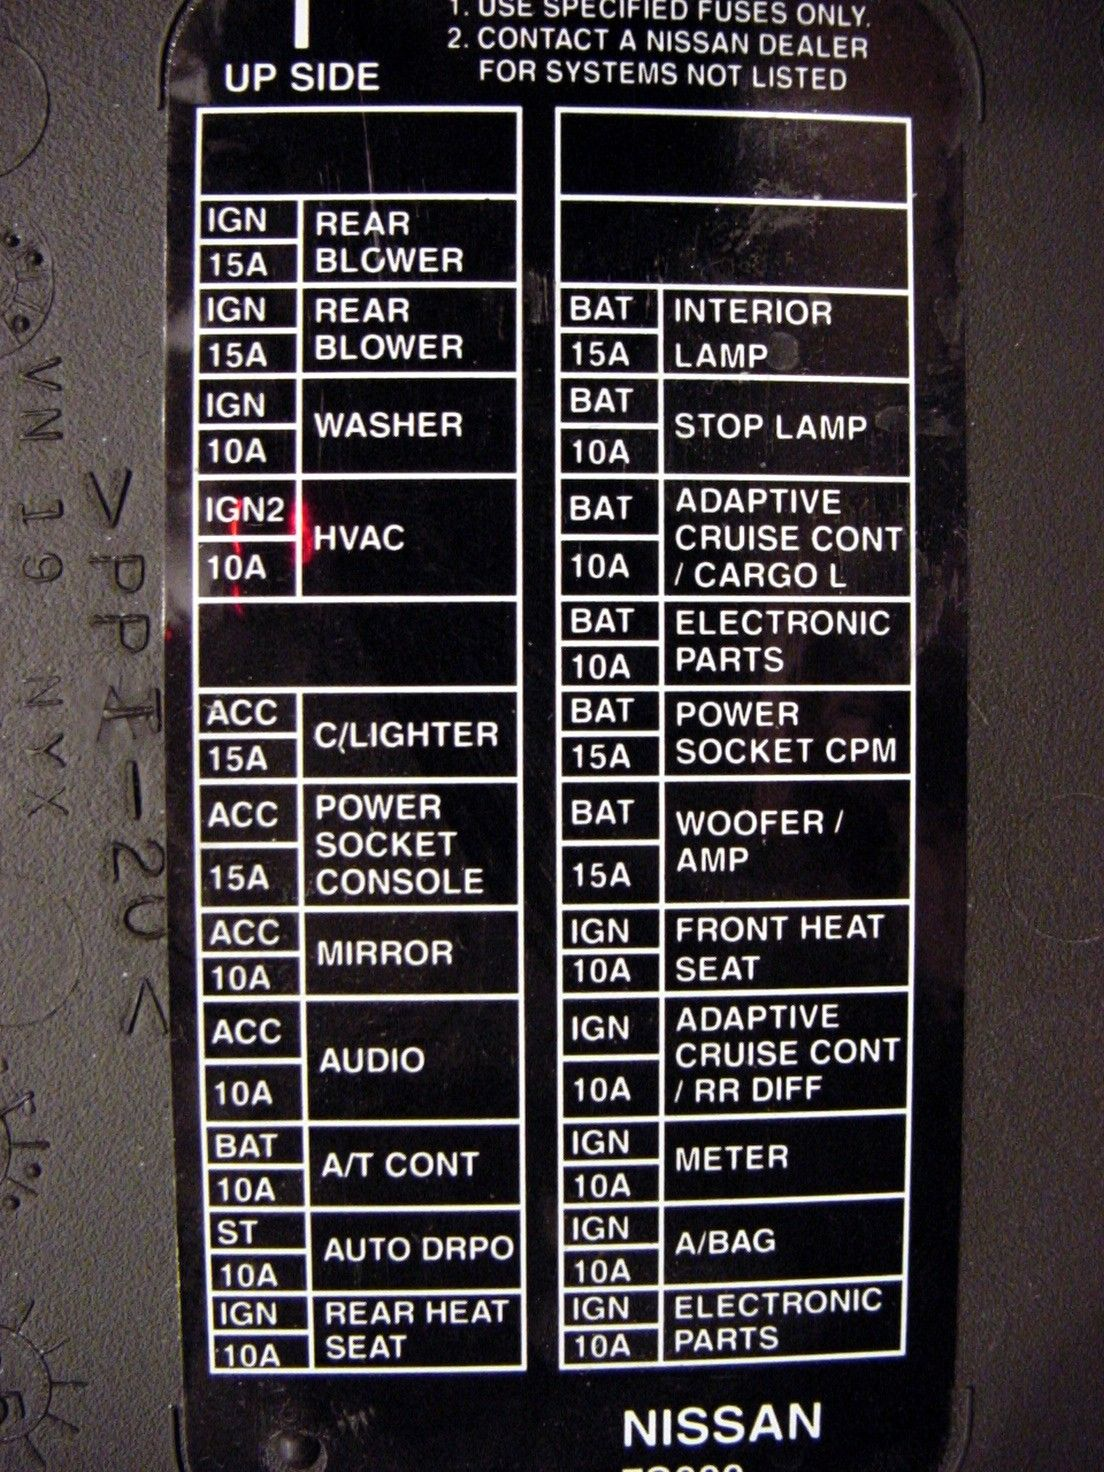 63841d1217640747 2004 fuse diagram please help fuse label nissan fuse box nissan frontier fuse box diagram \u2022 wiring diagrams 2005 nissan maxima engine fuse box diagram at reclaimingppi.co